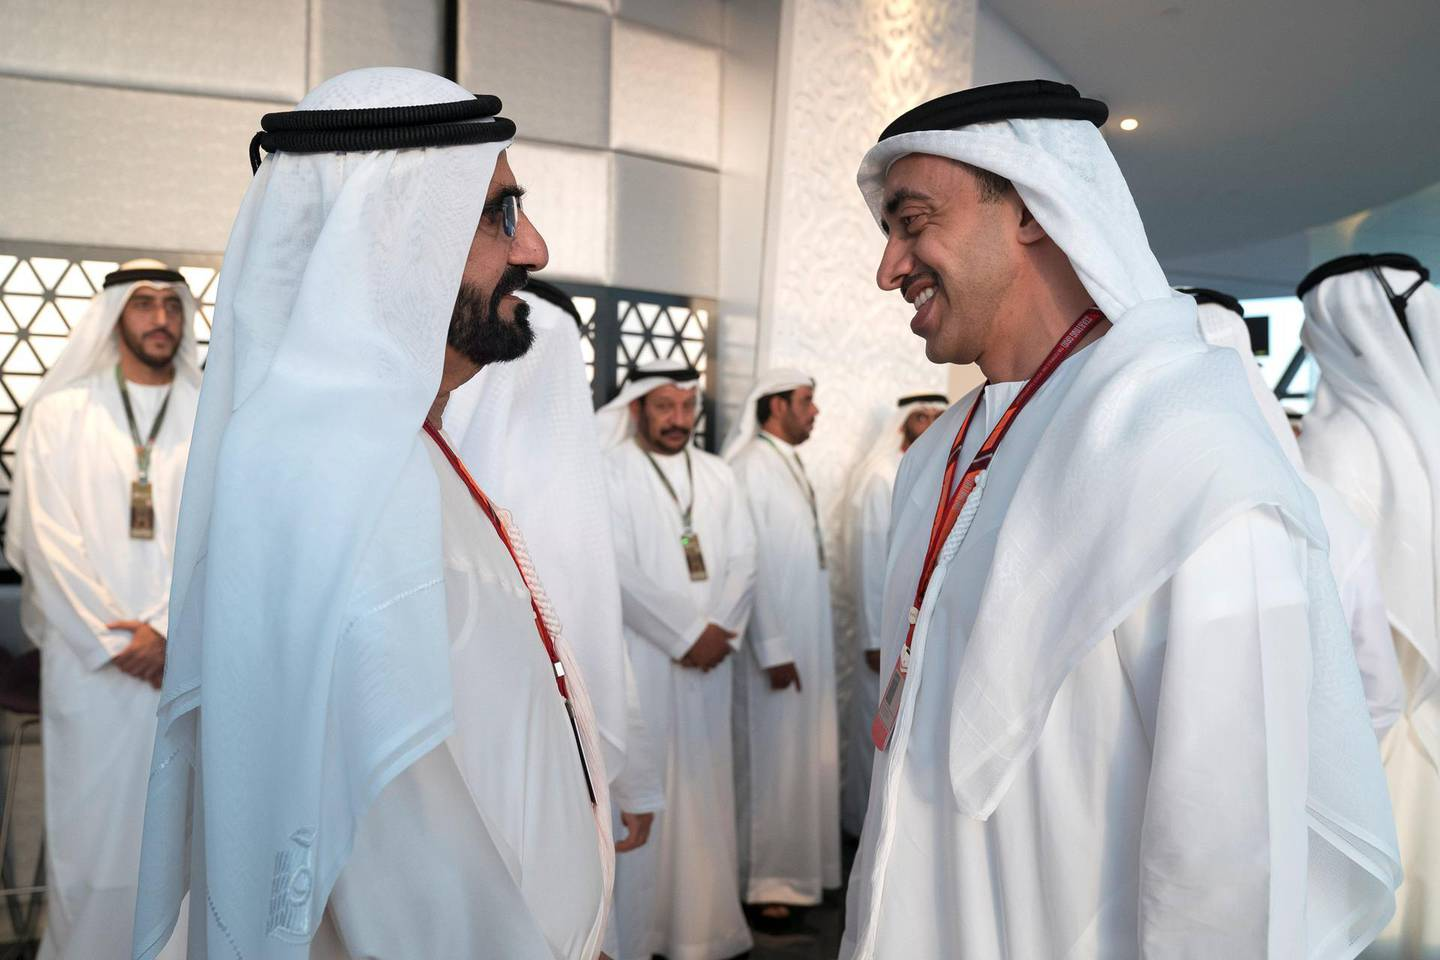 YAS ISLAND, ABU DHABI, UNITED ARAB EMIRATES - November 26, 2017: HH Sheikh Mohamed bin Rashid Al Maktoum, Vice-President, Prime Minister of the UAE, Ruler of Dubai and Minister of Defence (L) speaks with HH Sheikh Abdullah bin Zayed Al Nahyan, UAE Minister of Foreign Affairs and International Cooperation (R), on the final day of  Formula 1 Etihad Airways Abu Dhabi Grand Prix, at Shams Tower.   ( Omar Al Askar  for The Crown Prince Court - Abu Dhabi ) ---